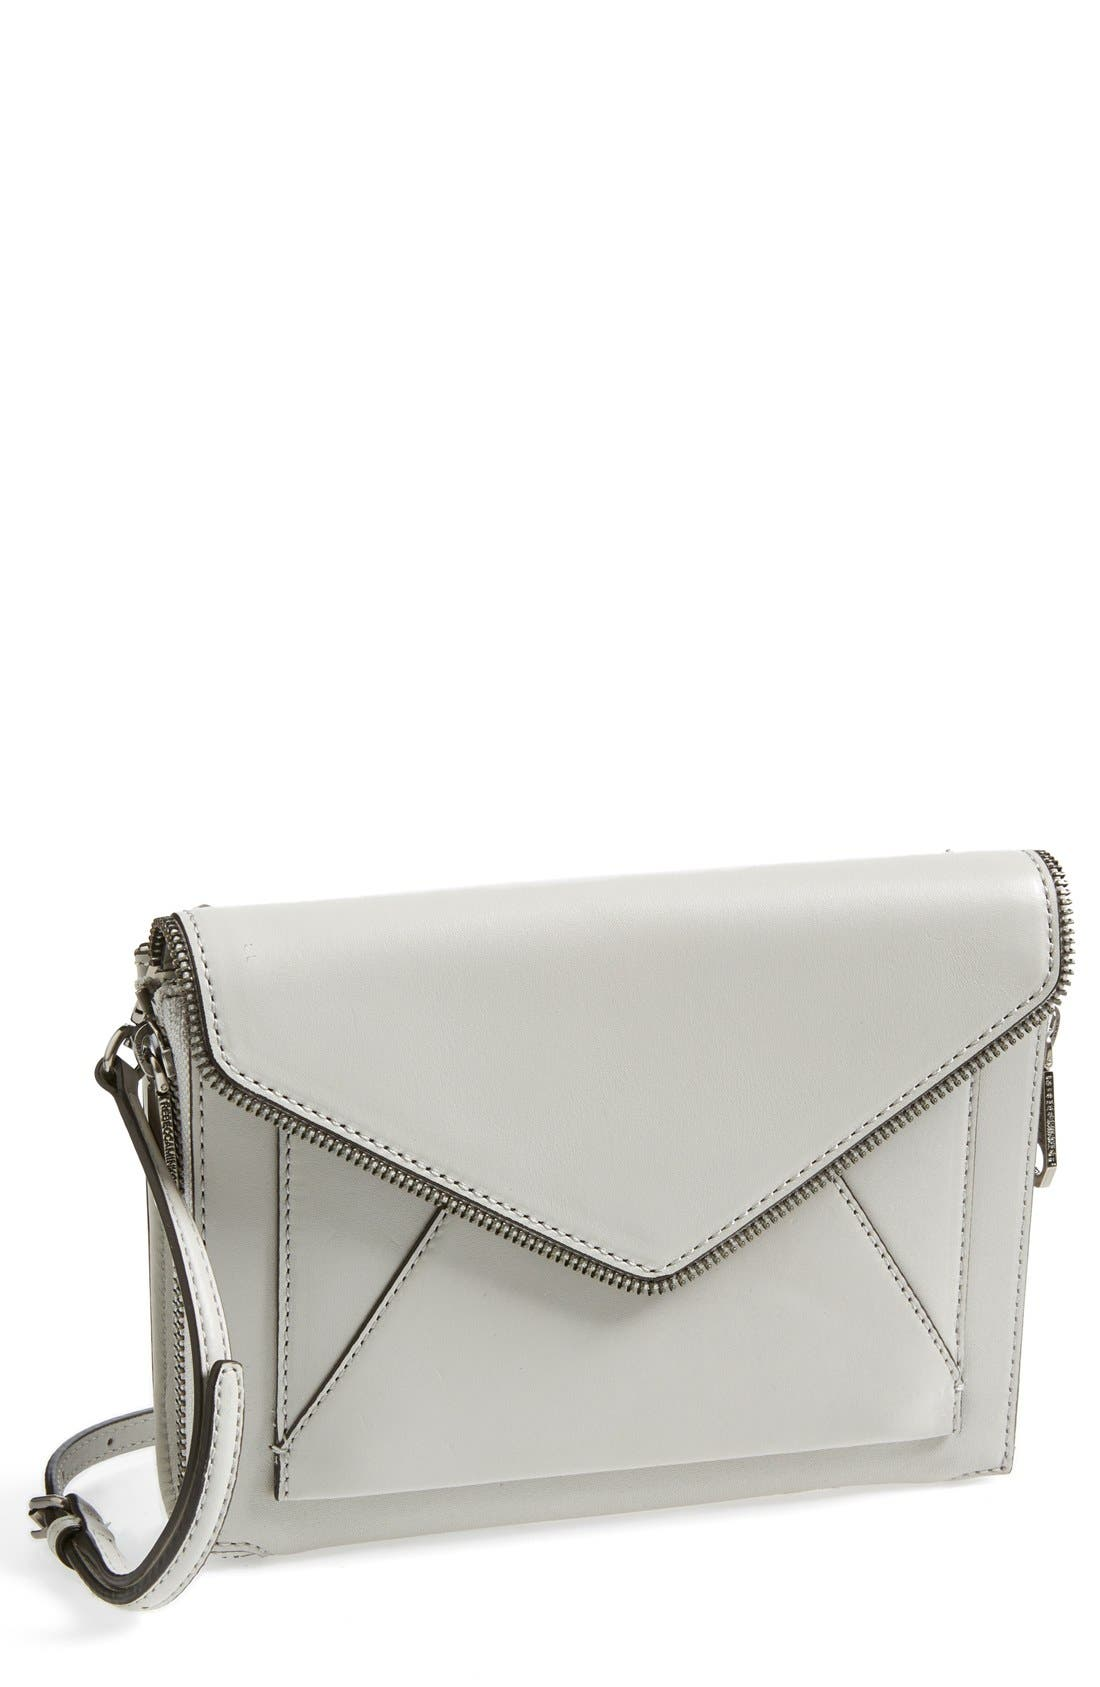 Main Image - Rebecca Minkoff 'Marlowe' Mini Crossbody